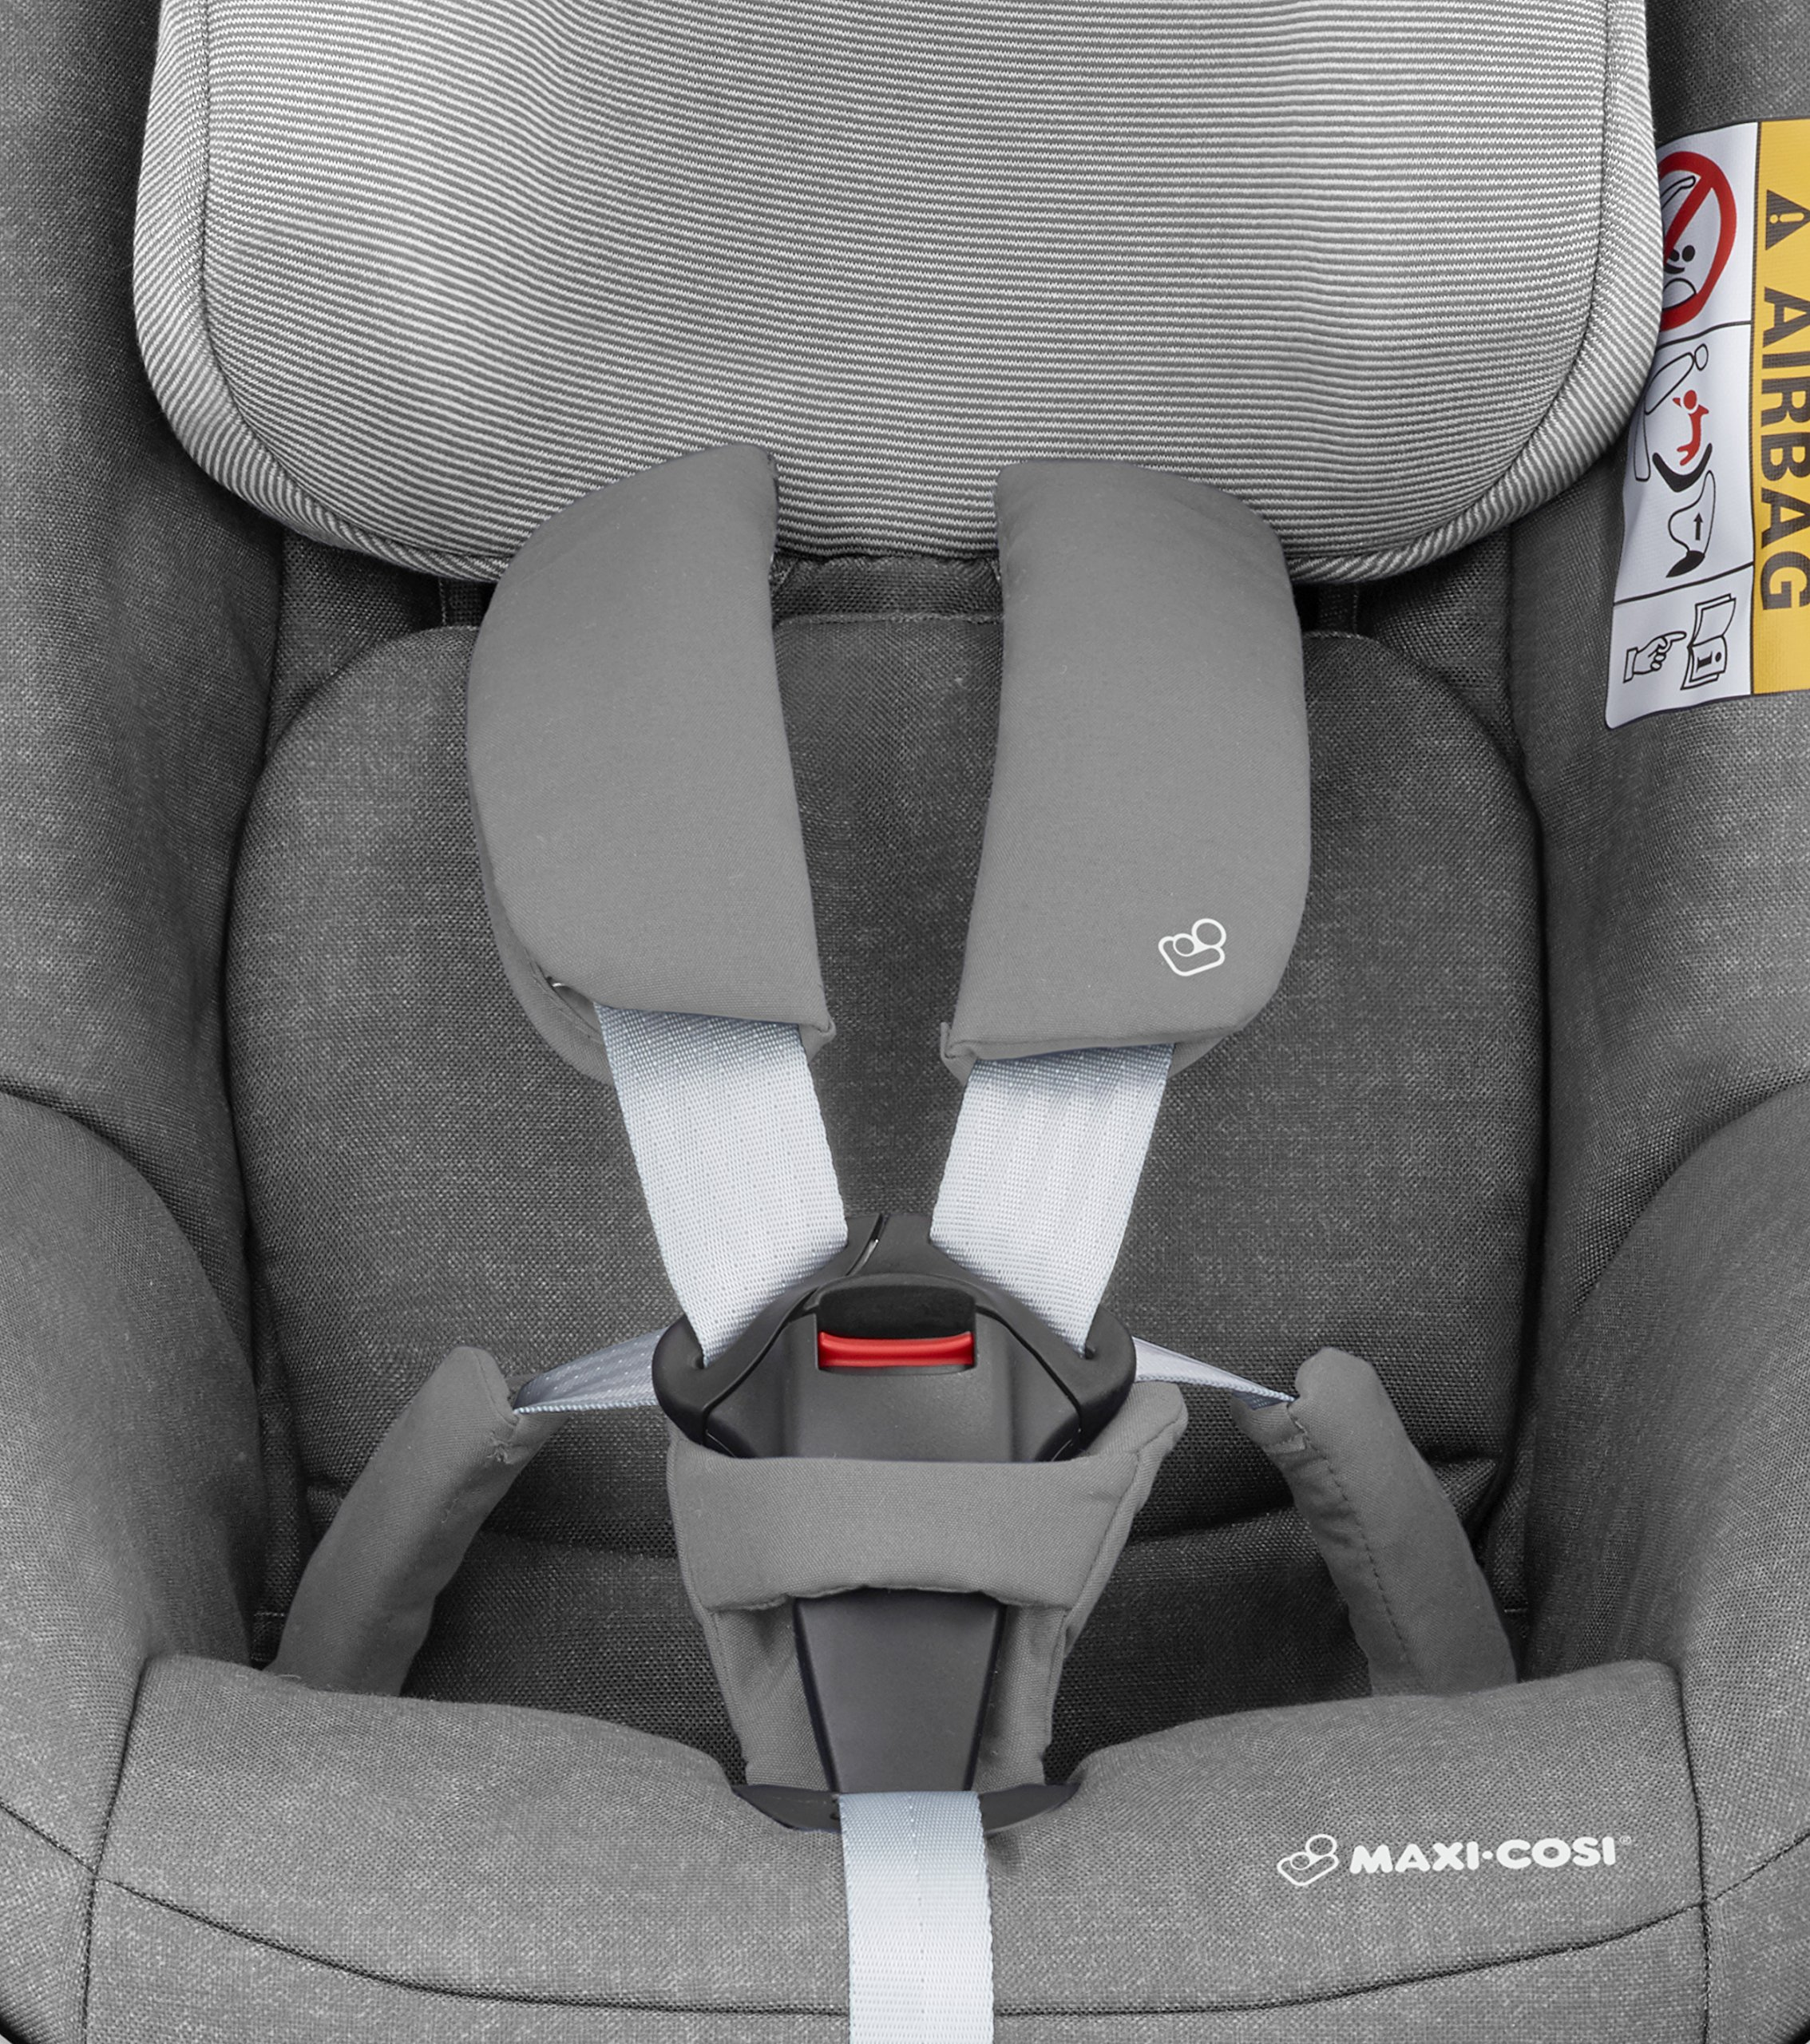 Maxi-Cosi Pearl One i-Size Toddler Car Seat Group 1, Rear-Facing Car Seat, ISOFIX, 67-105 cm, 6 Months-4 Years, Nomad Grey Maxi-Cosi Must be used with the maxi-cosi family fix one i-size base Approved according to the latest european safety standard i-size (r129) Innovative stay open harness to easily get the child in and out in seconds 6